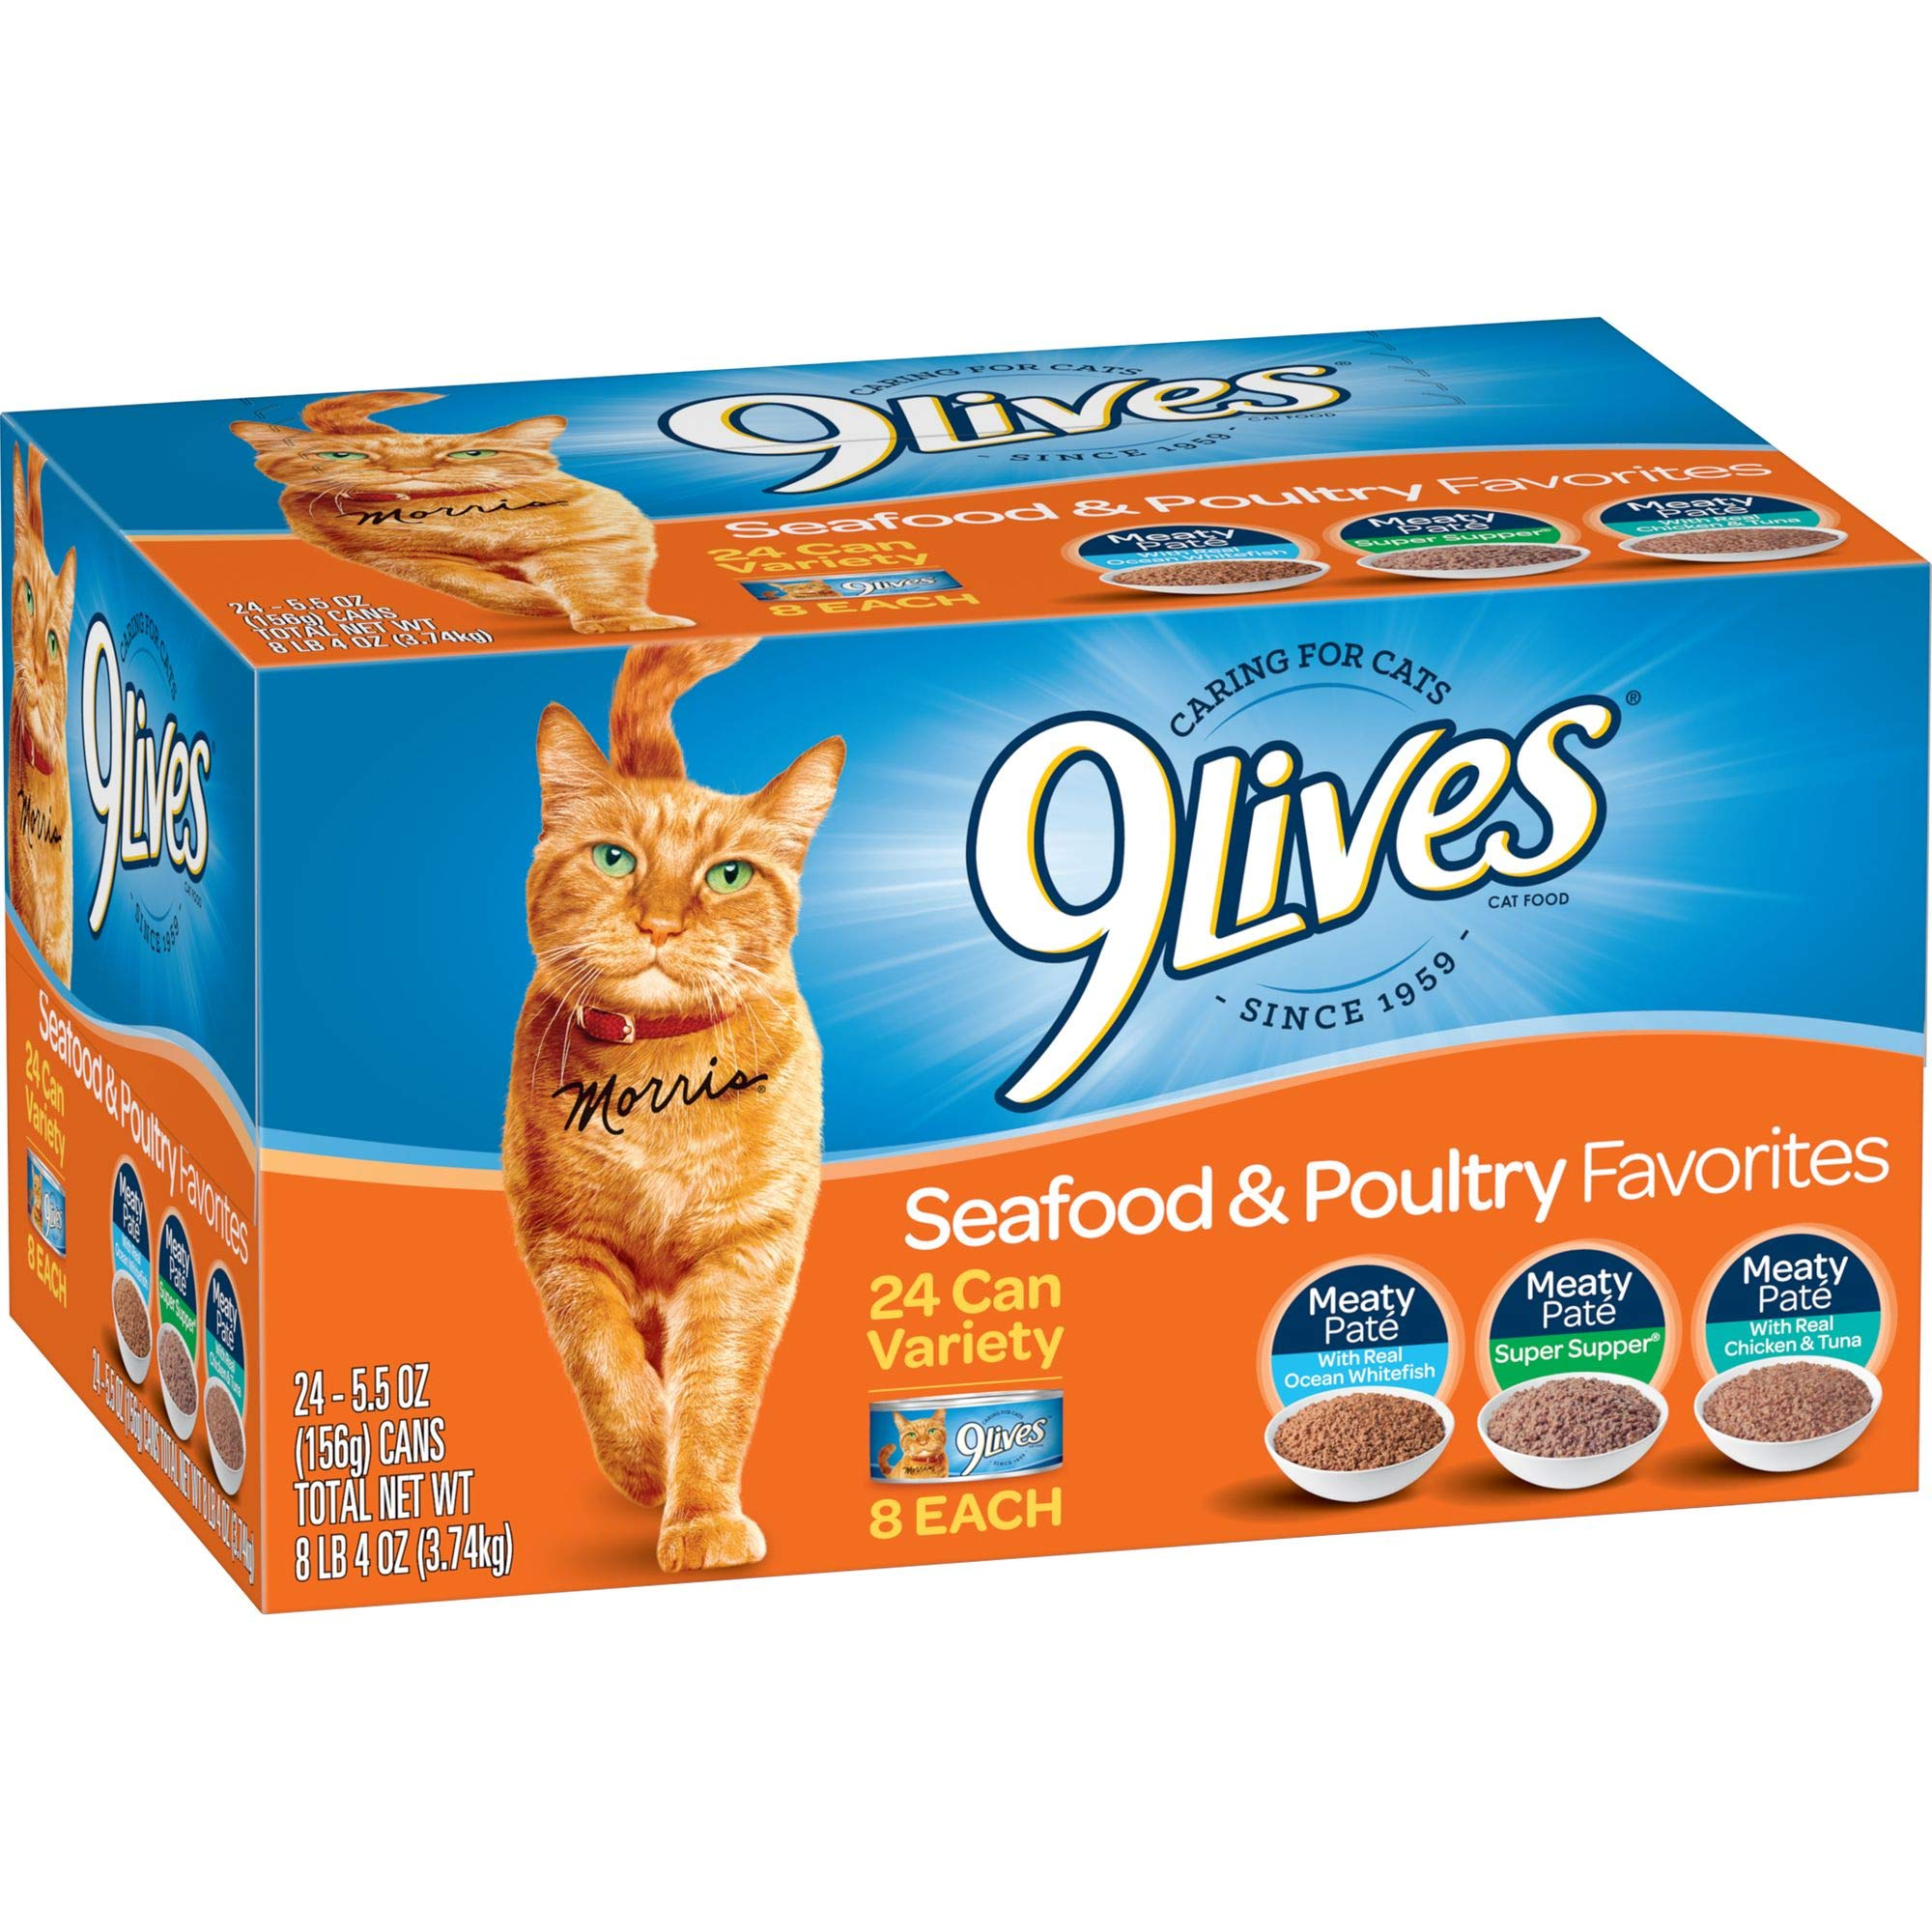 9 Lives Seafood & Poultry Favorites Wet Cat Food Variety (24 Pack), 5.5 Ounce